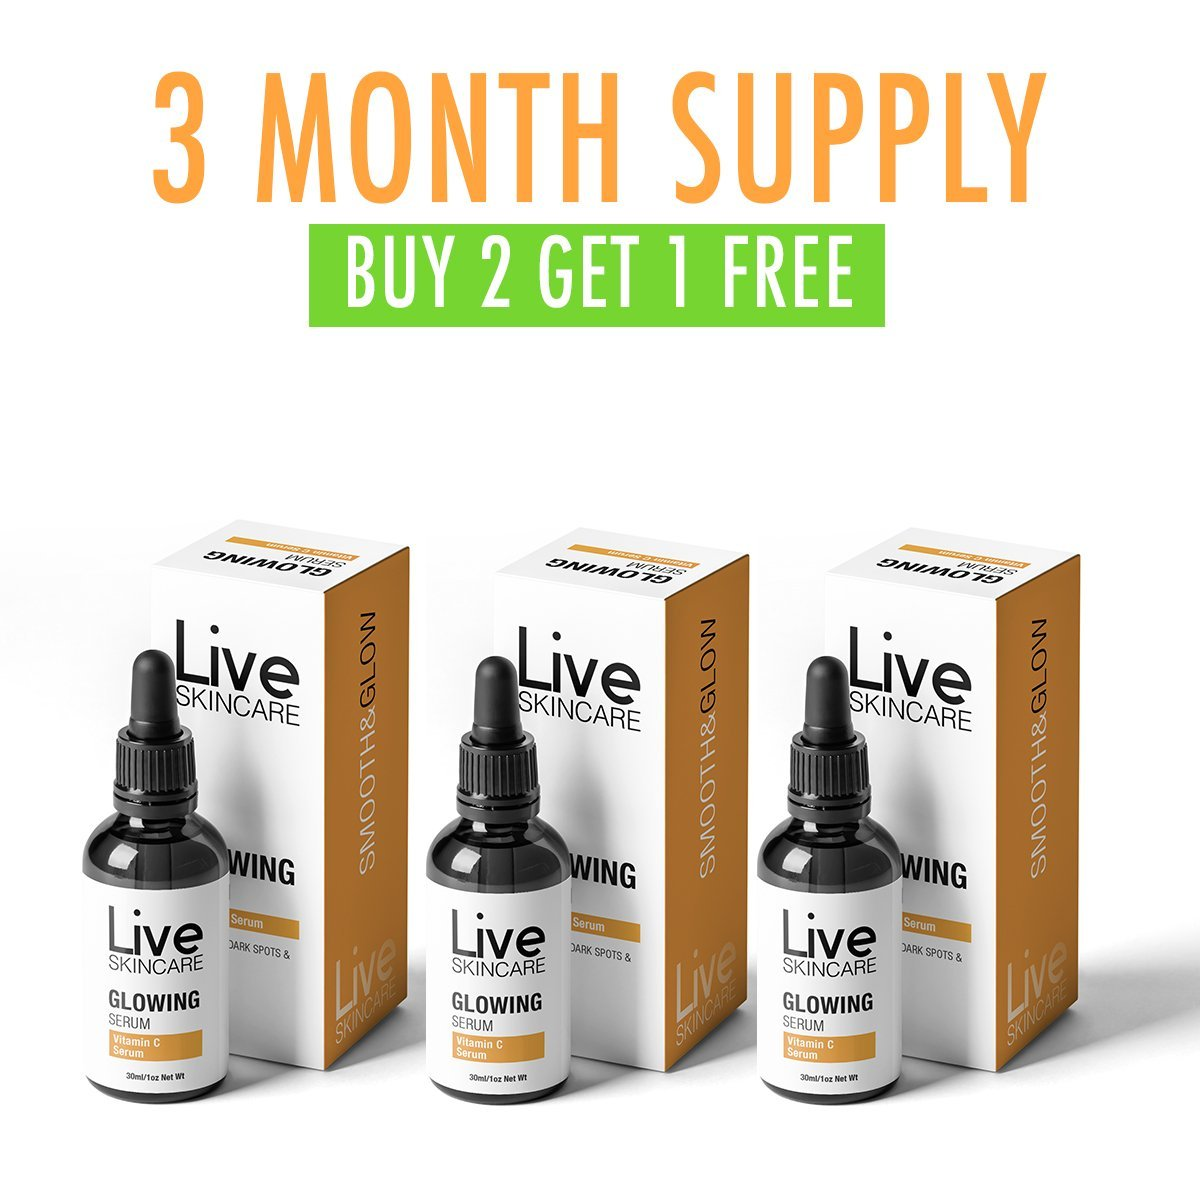 3 Month Supply - Vitamin C Serum (Gets Rid Of Acne In Just 7 Days)